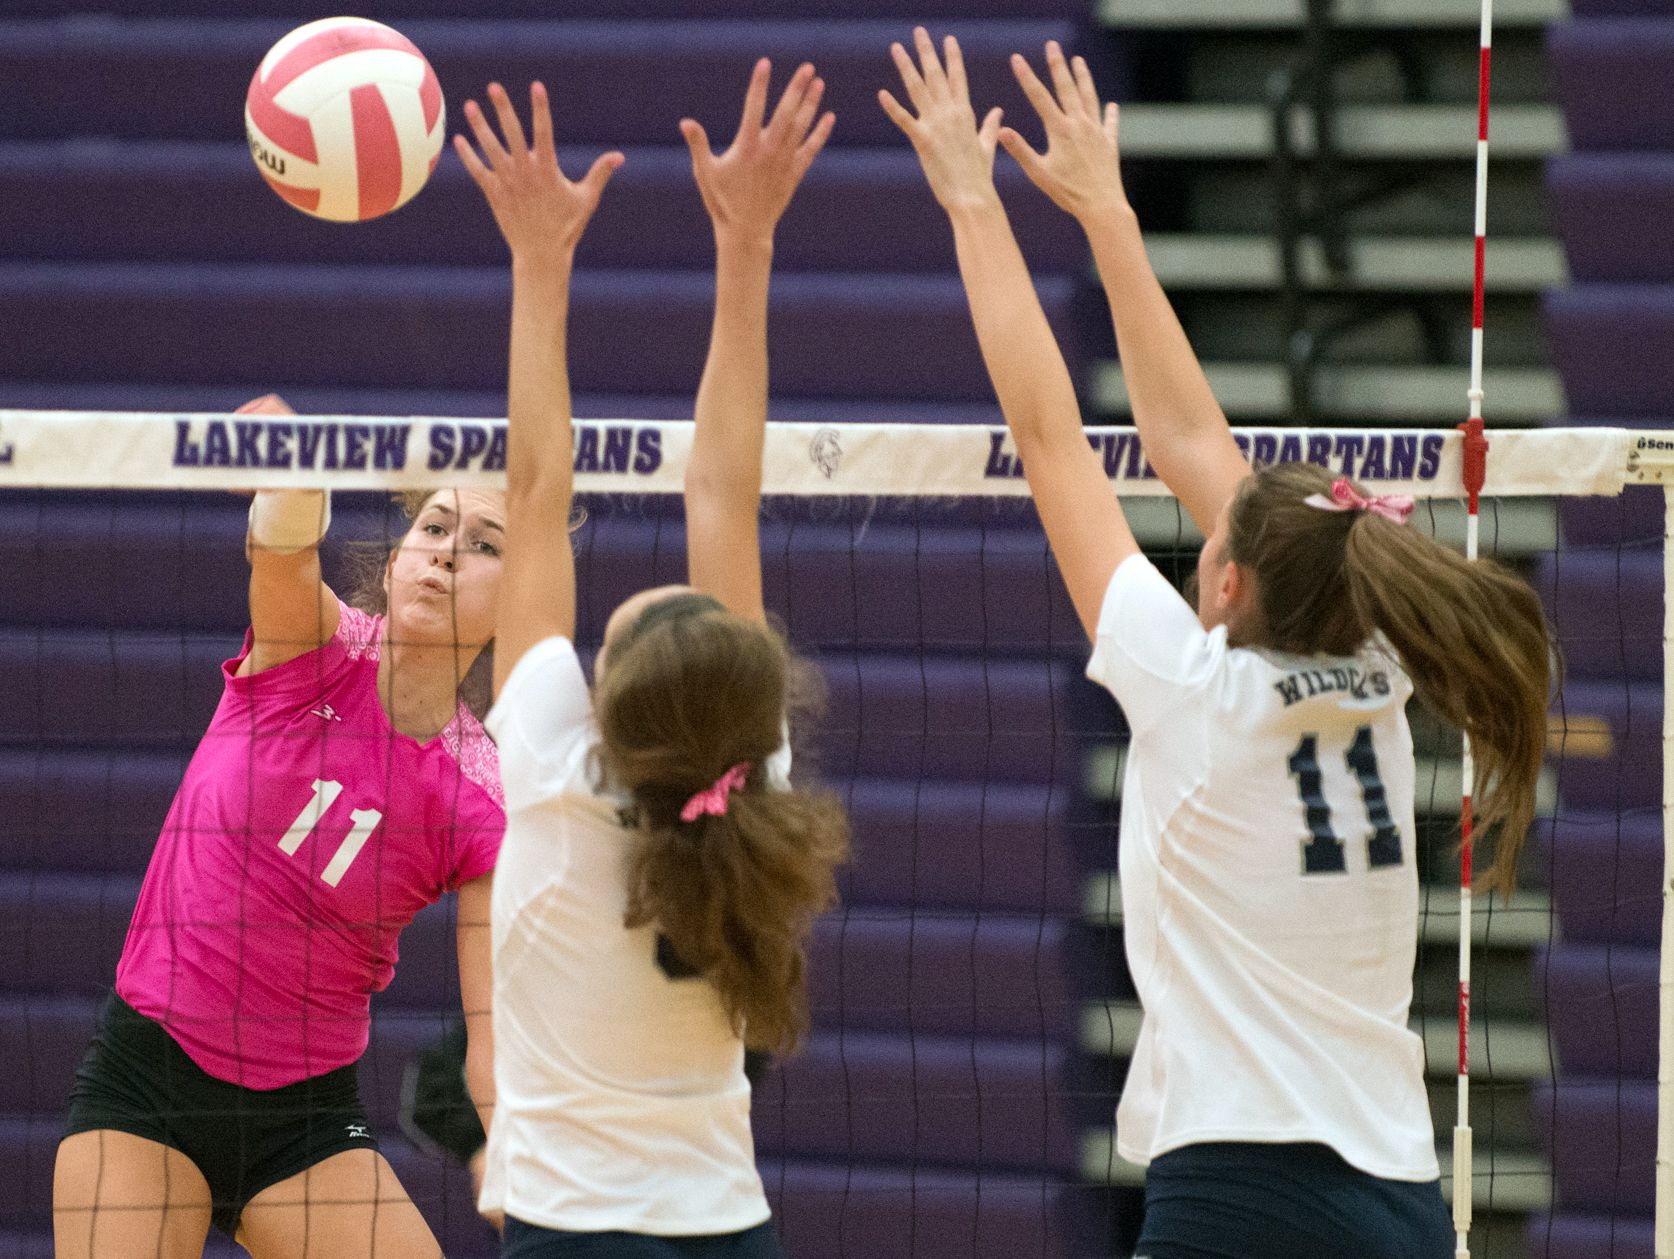 Lakeview's Sidney Schiller (11) in game action.